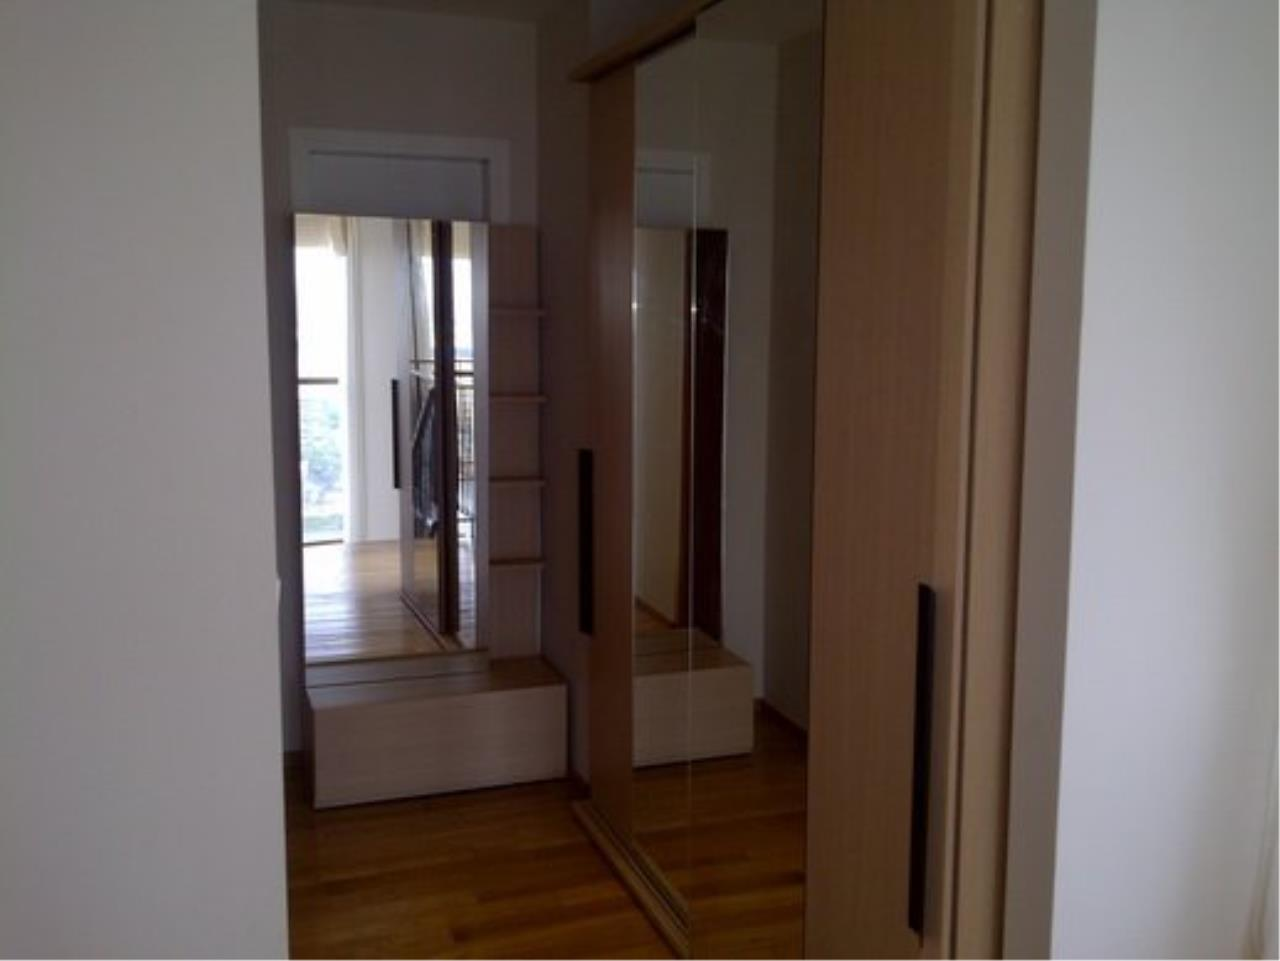 Piri Property Agency's Duplex 1 Bedroom Condo in the Emporio Place building for rent on high floor 11